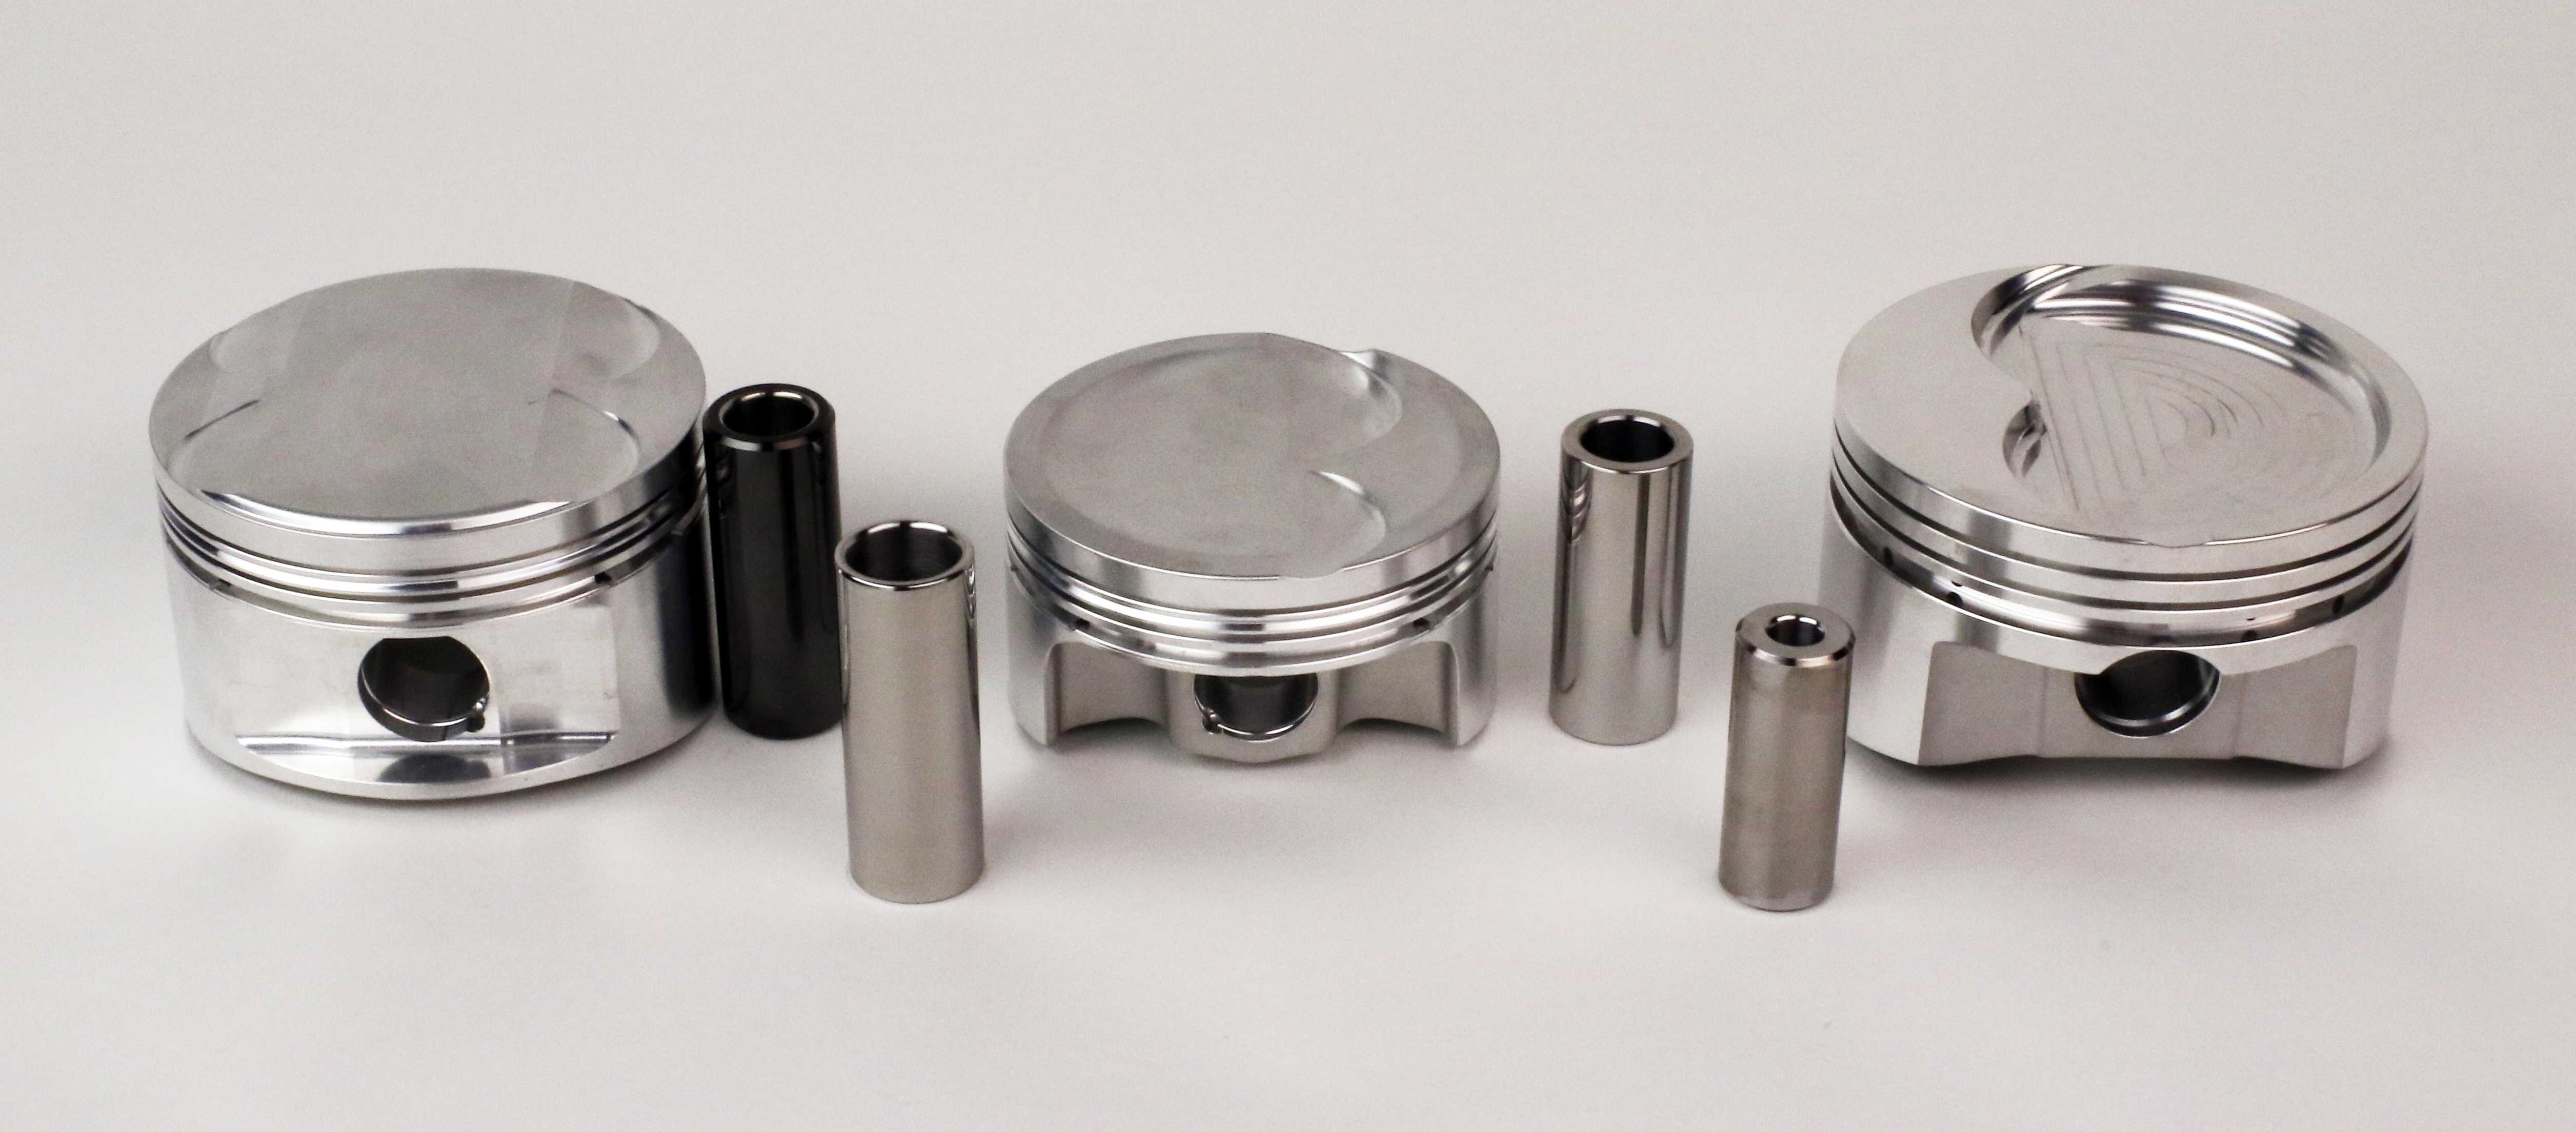 Piston Pin Market Trending Tools, Demand and Supply, Precise Outlook